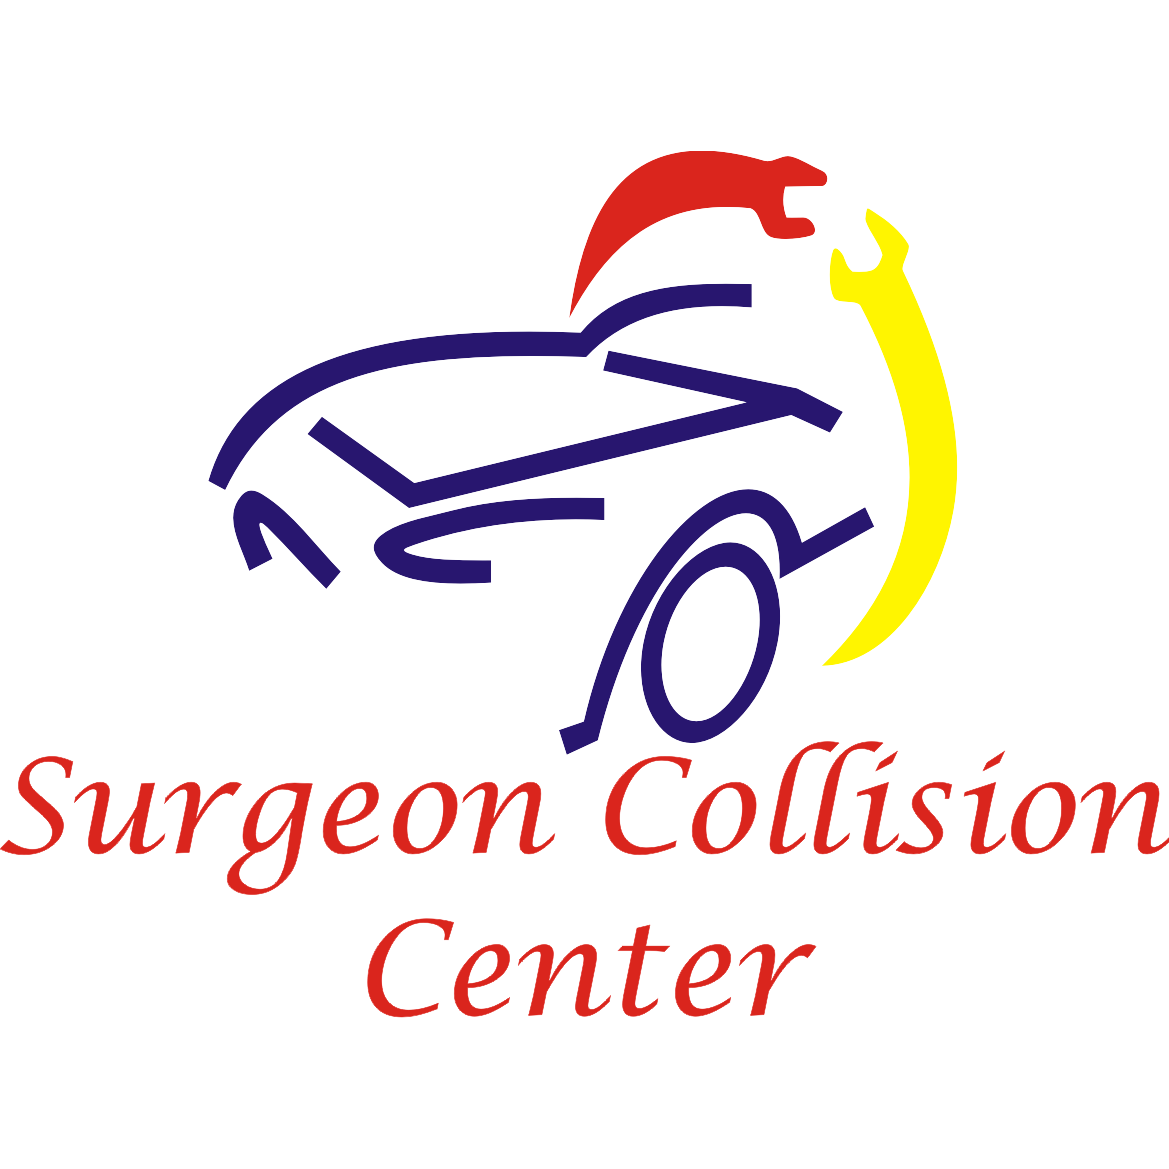 Surgeon Collisions Center